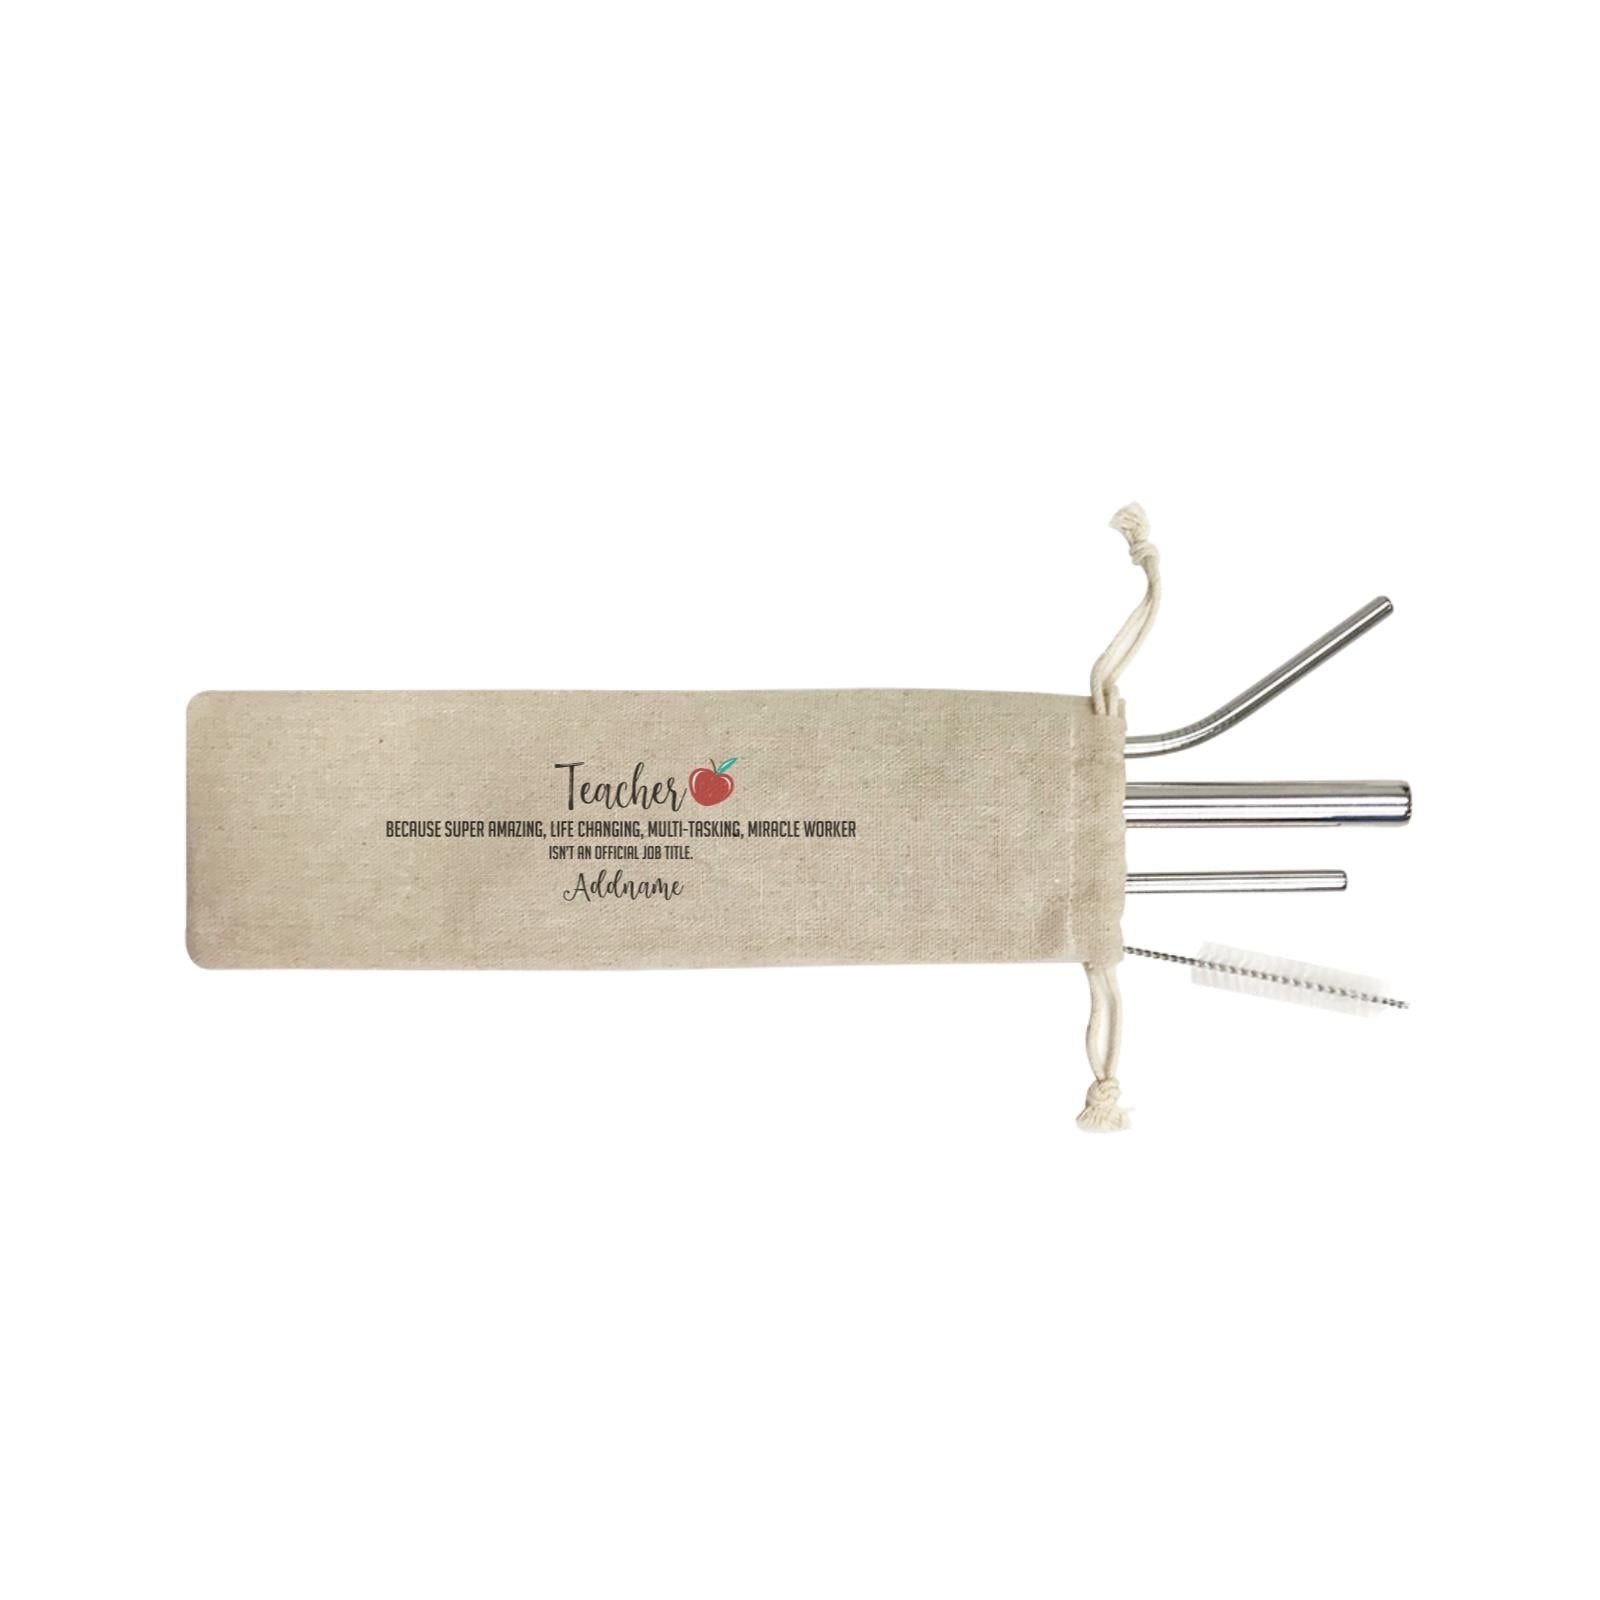 Teacher Quotes Teacher Miracle Worker Isn't An Official Job Title Addname SB 4-In-1 Stainless Steel Straw Set in Satchel